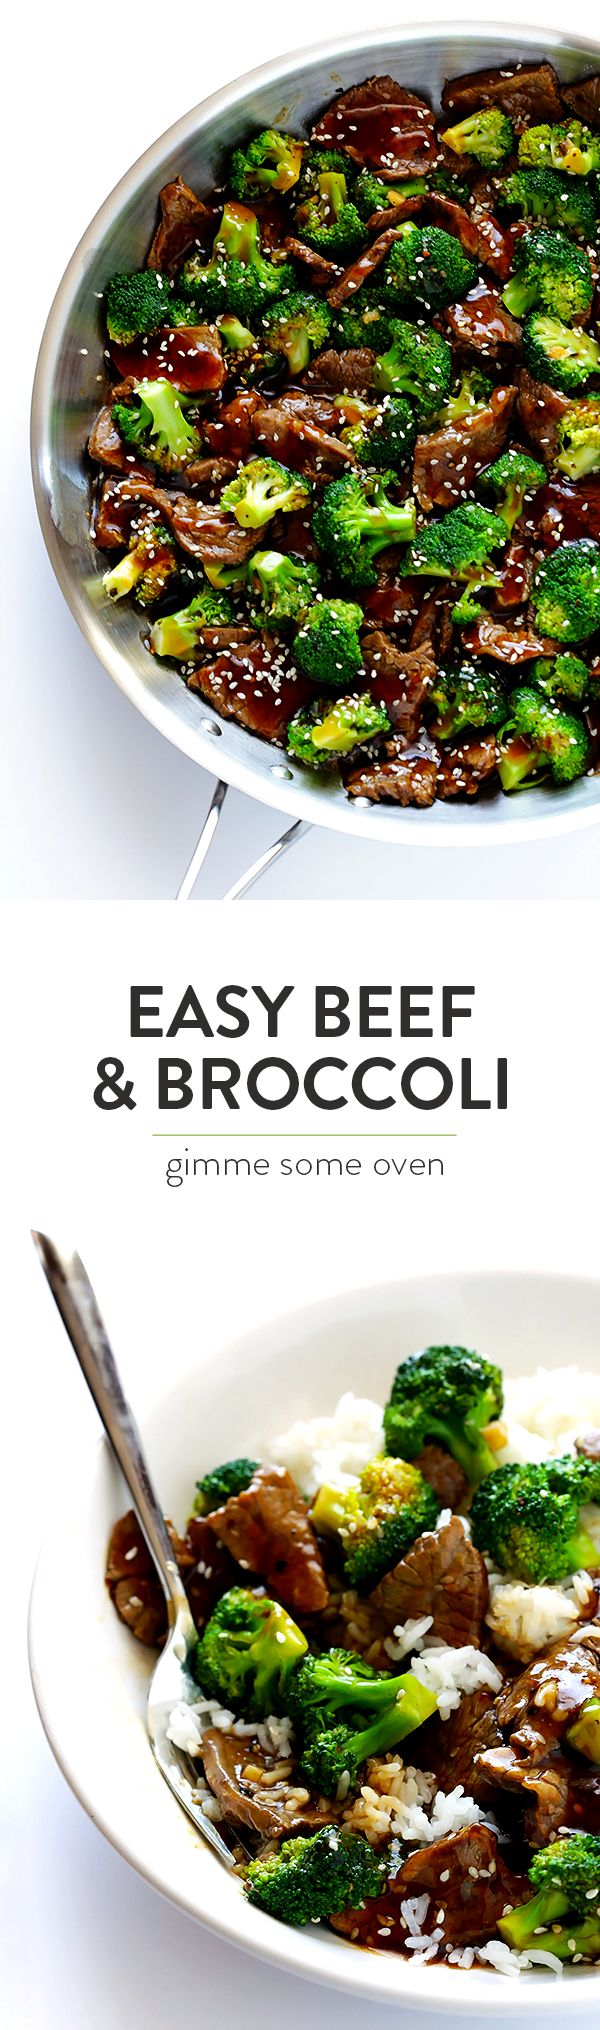 This Chinese Beef and Broccoli recipe is easy to make, ready to go in about 30 minutes, and I'm convinced it's even better than the restaurant version! | gimmesomeoven.com